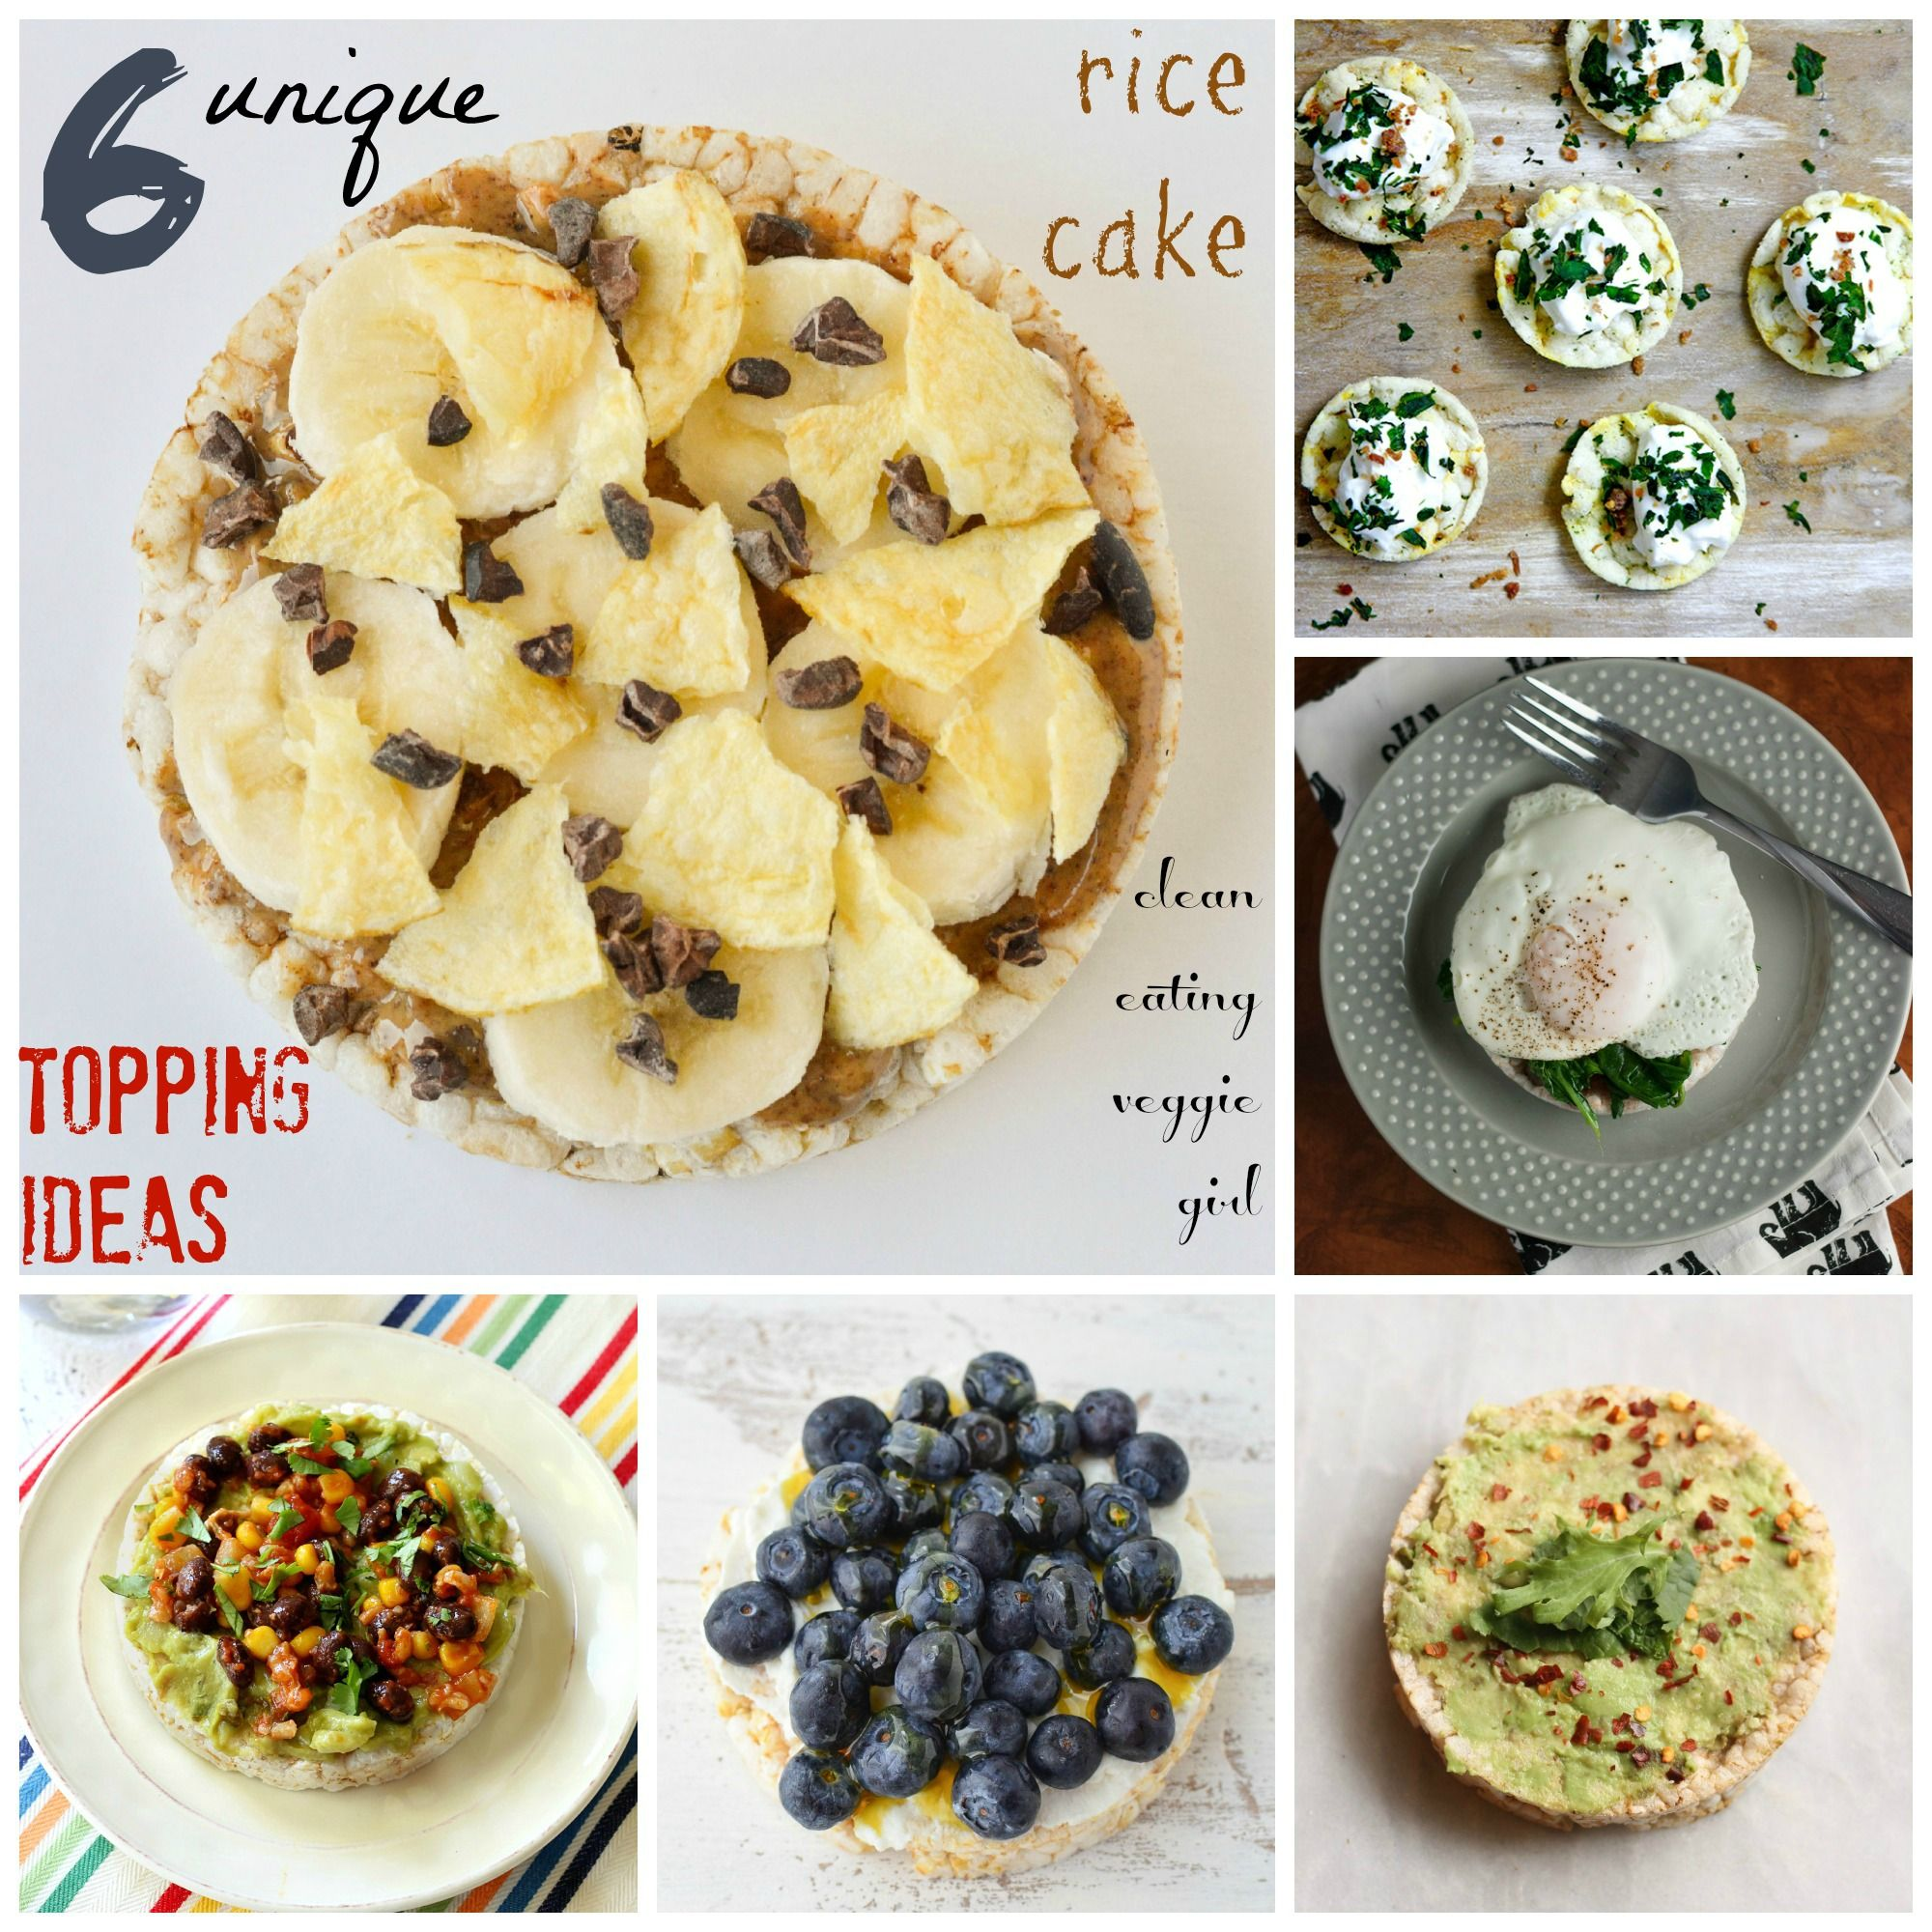 Unique Rice Cake Topping Ideas For Both Meals And Snacks